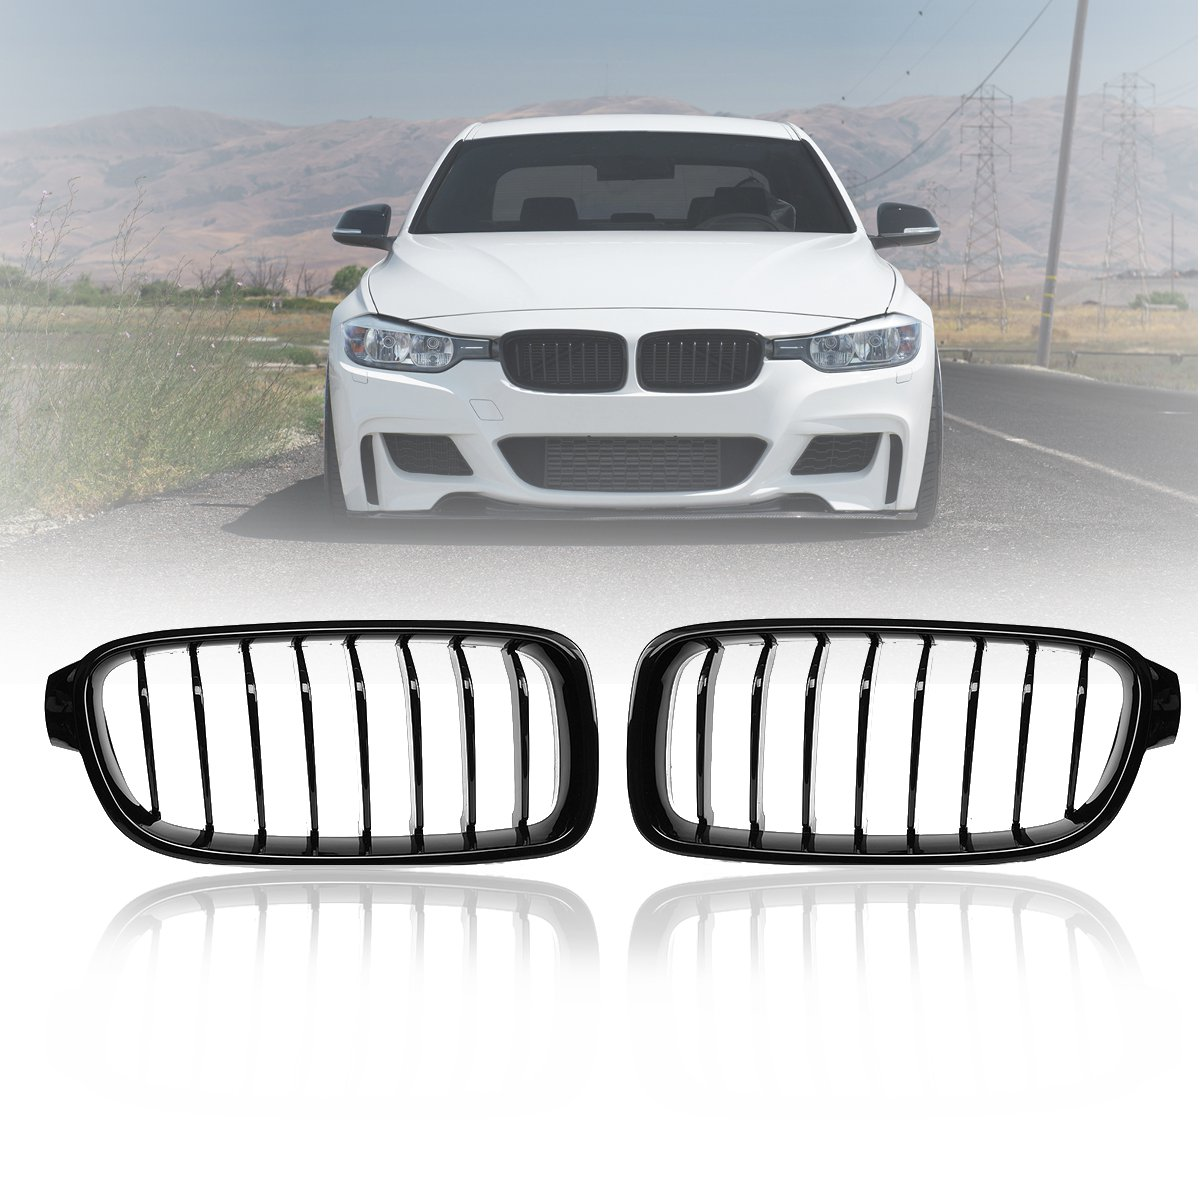 Pair Gloss Matt Carbon Black 3 Color Front Kidney Grille For BMW 3 Series F30 F31 F35 F80 2012 2013 2014 2015-2018 Racing Grills